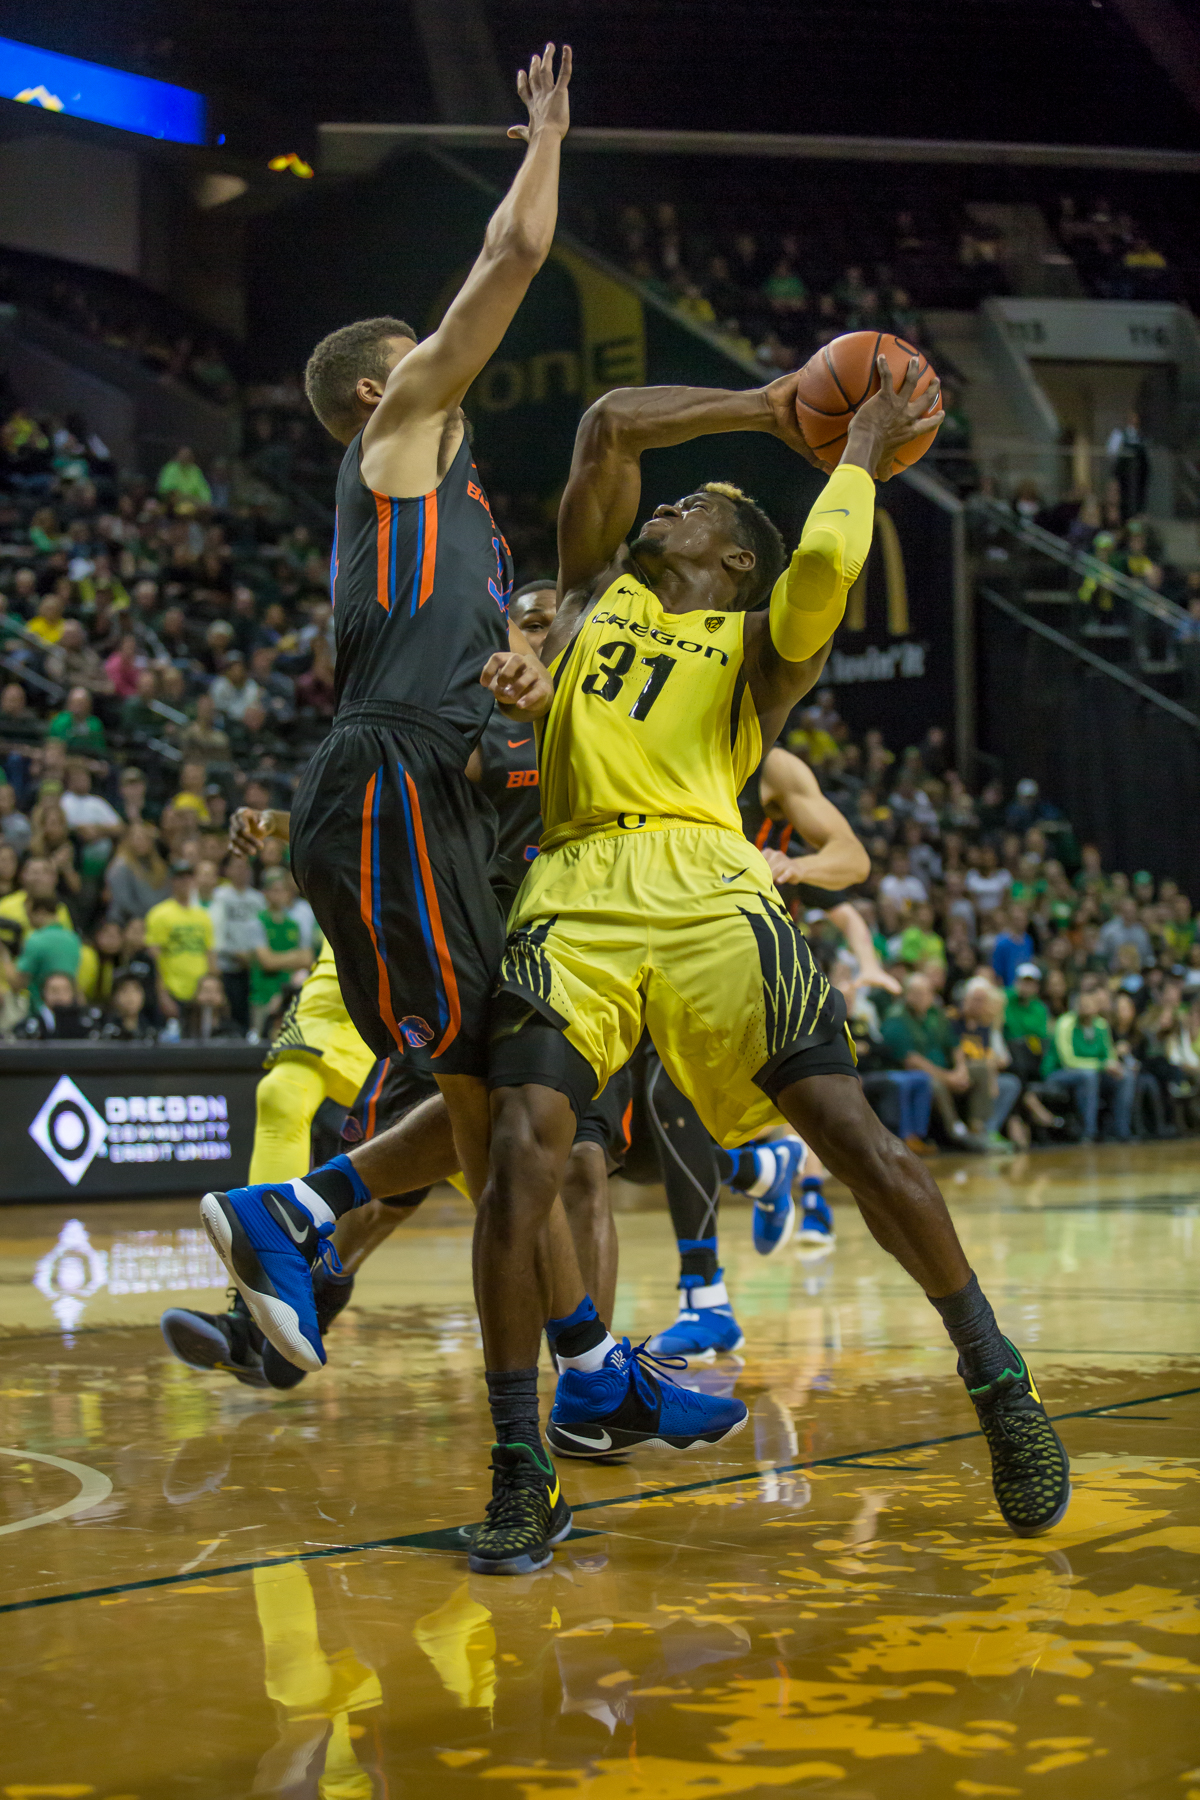 Oregon forward Dylan Ennis (#31) attempts to shoot the ball over Boise State guard Alex Hobbs (#34). After trailing for most of the game, the Oregon Ducks defeated the Boise State Broncos 68-63. Photo by Dillon Vibes